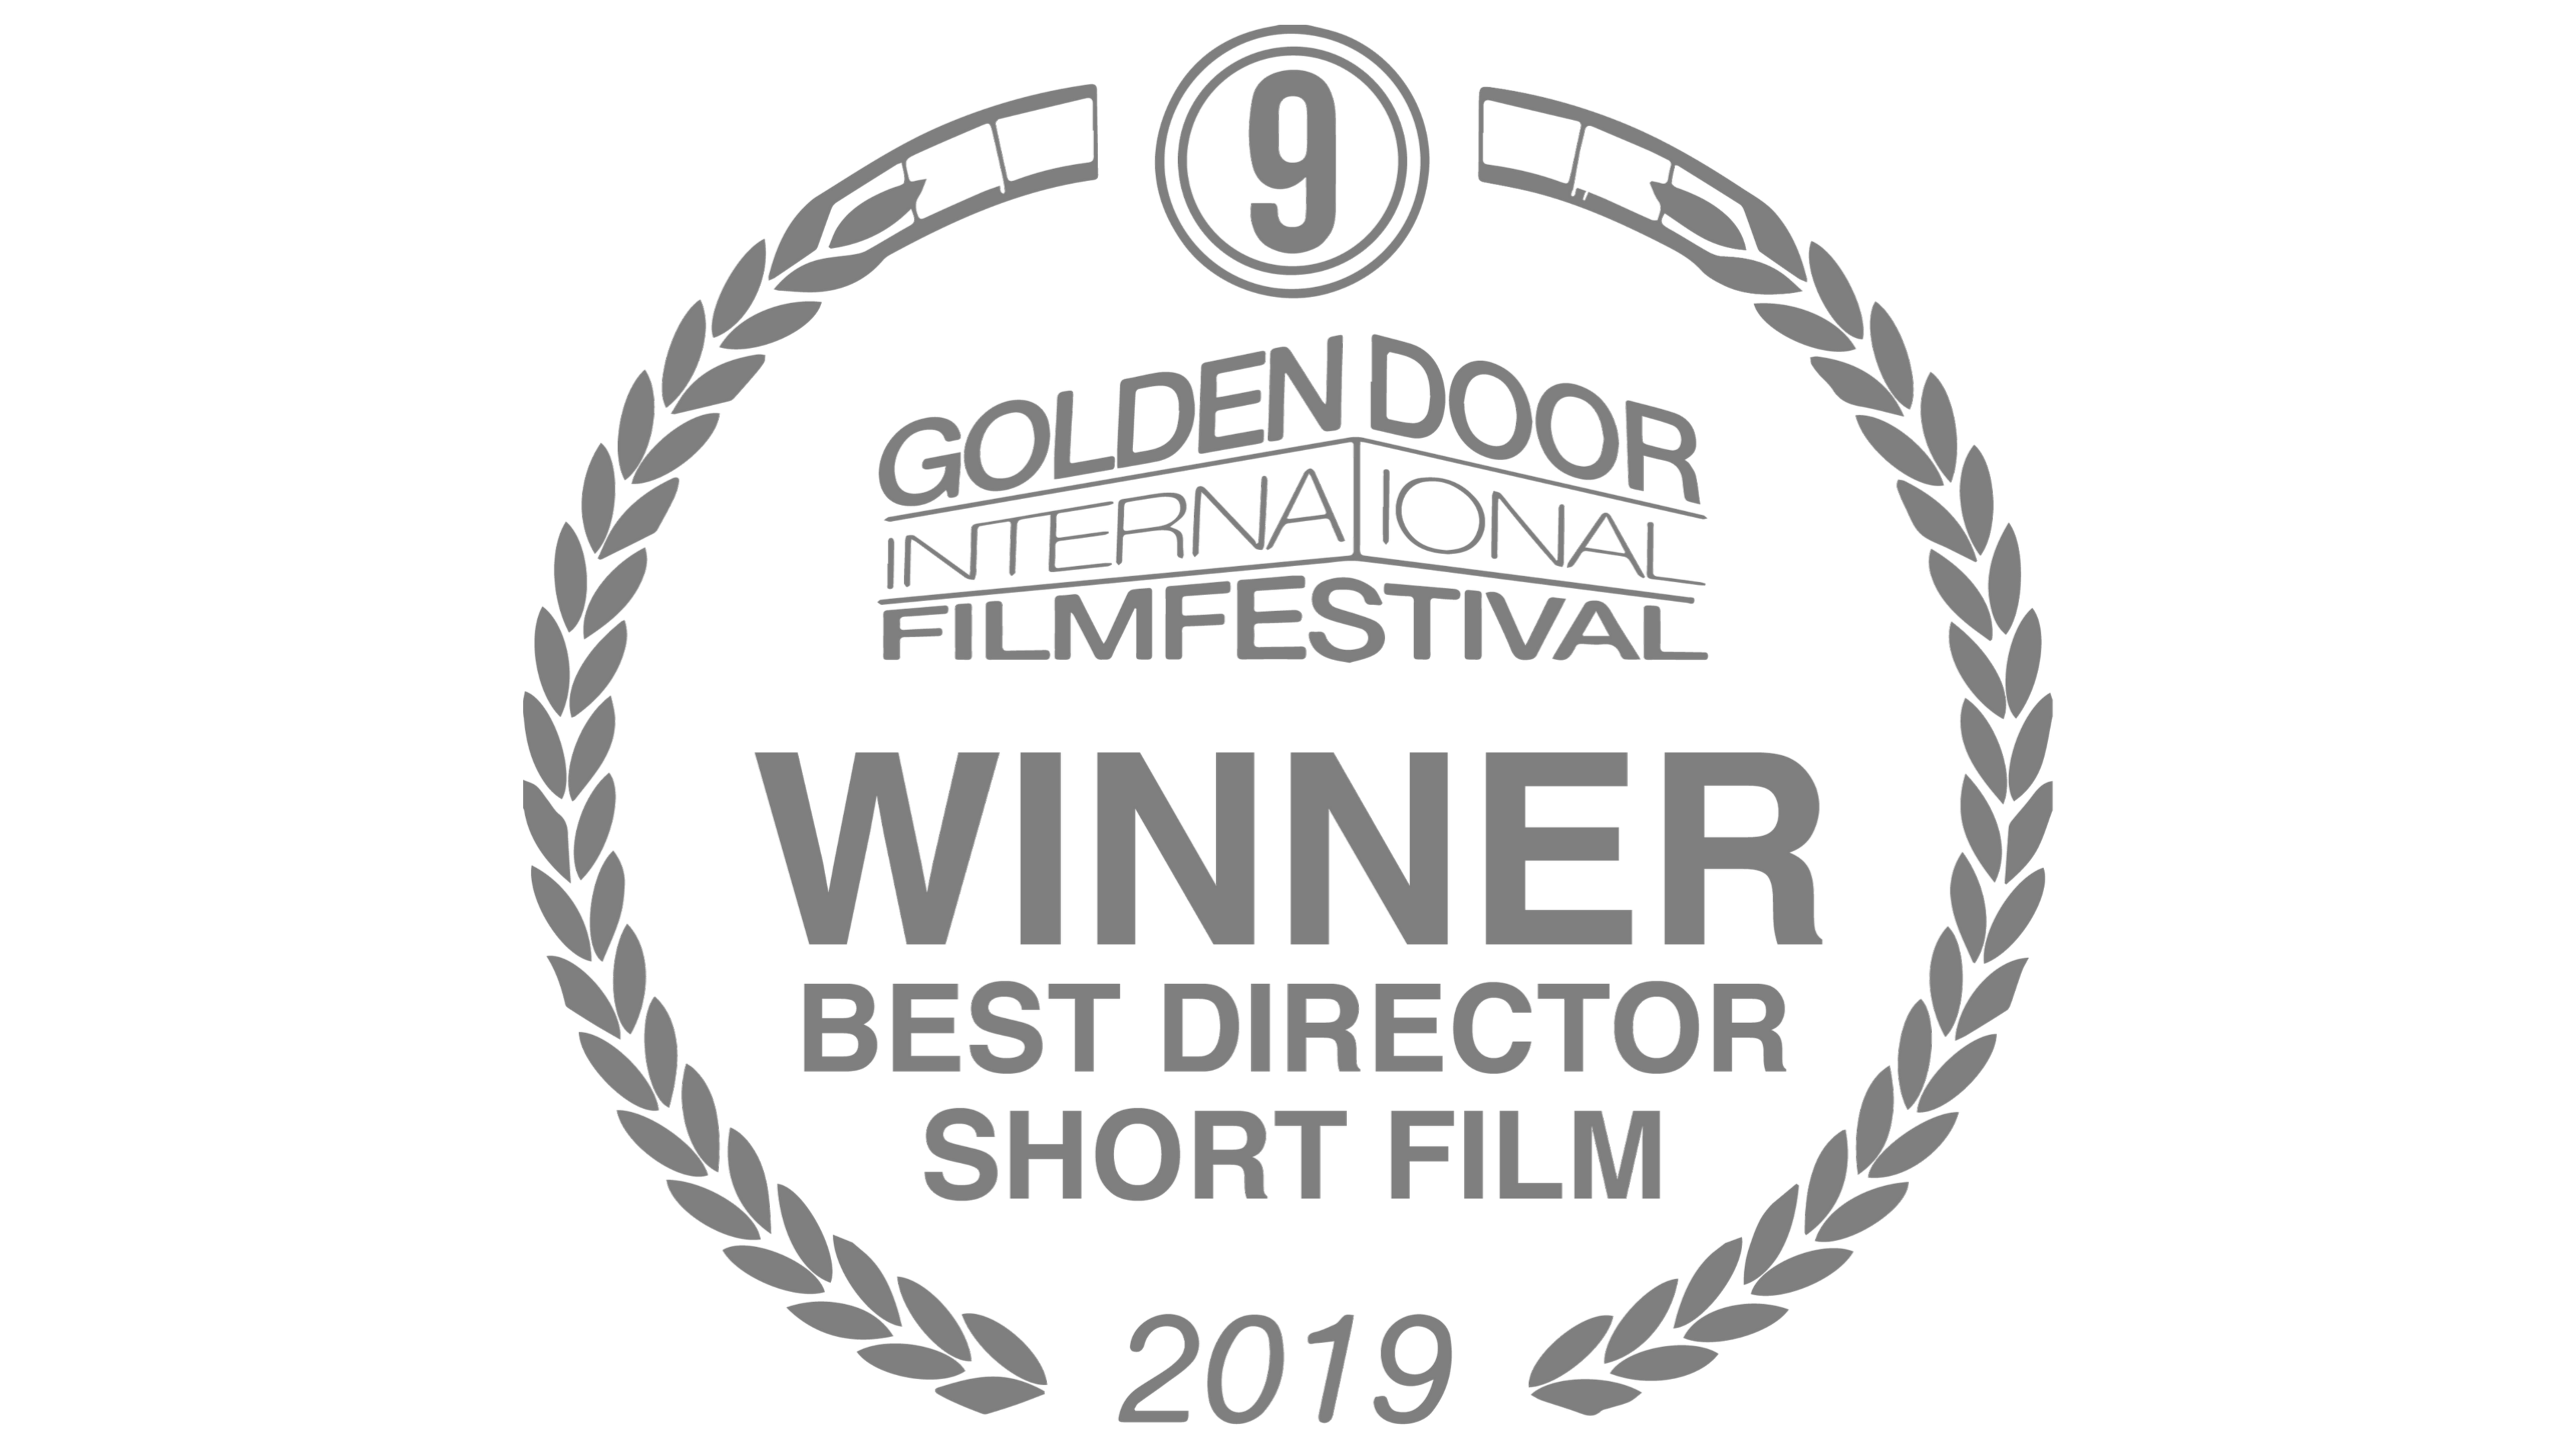 20191004A - Best Local Film - Awards Only - GDIFF - LIKE US Movie - FSPAP - THISLEARNING